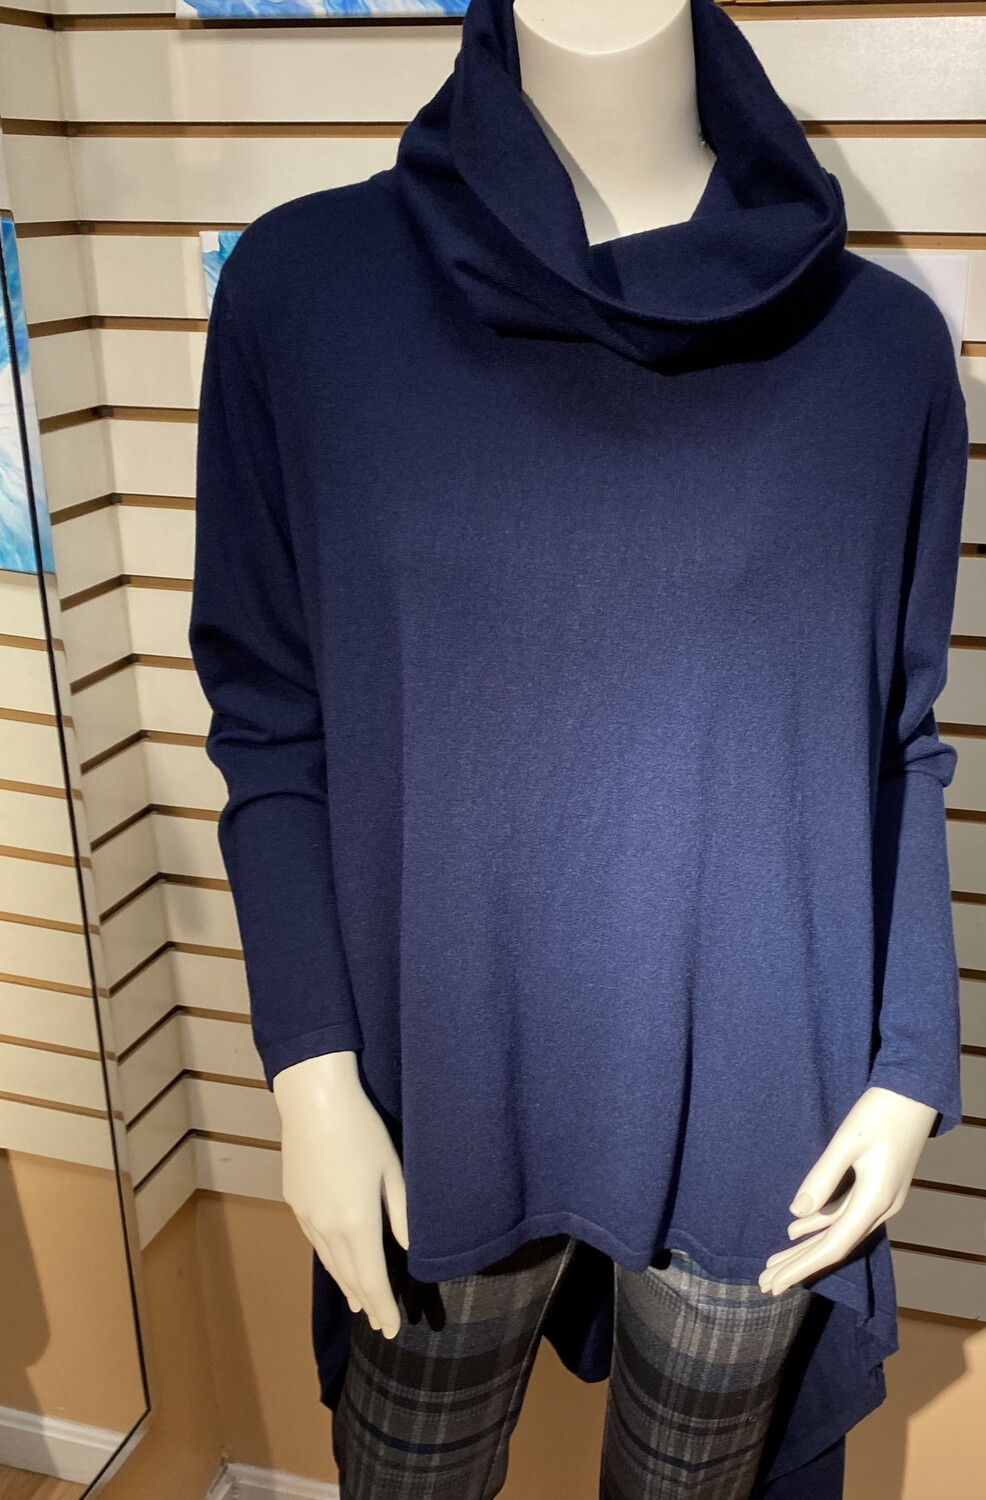 Major Deal Made In Italy Knit Tunic Navy So Soft. Only 1 Small